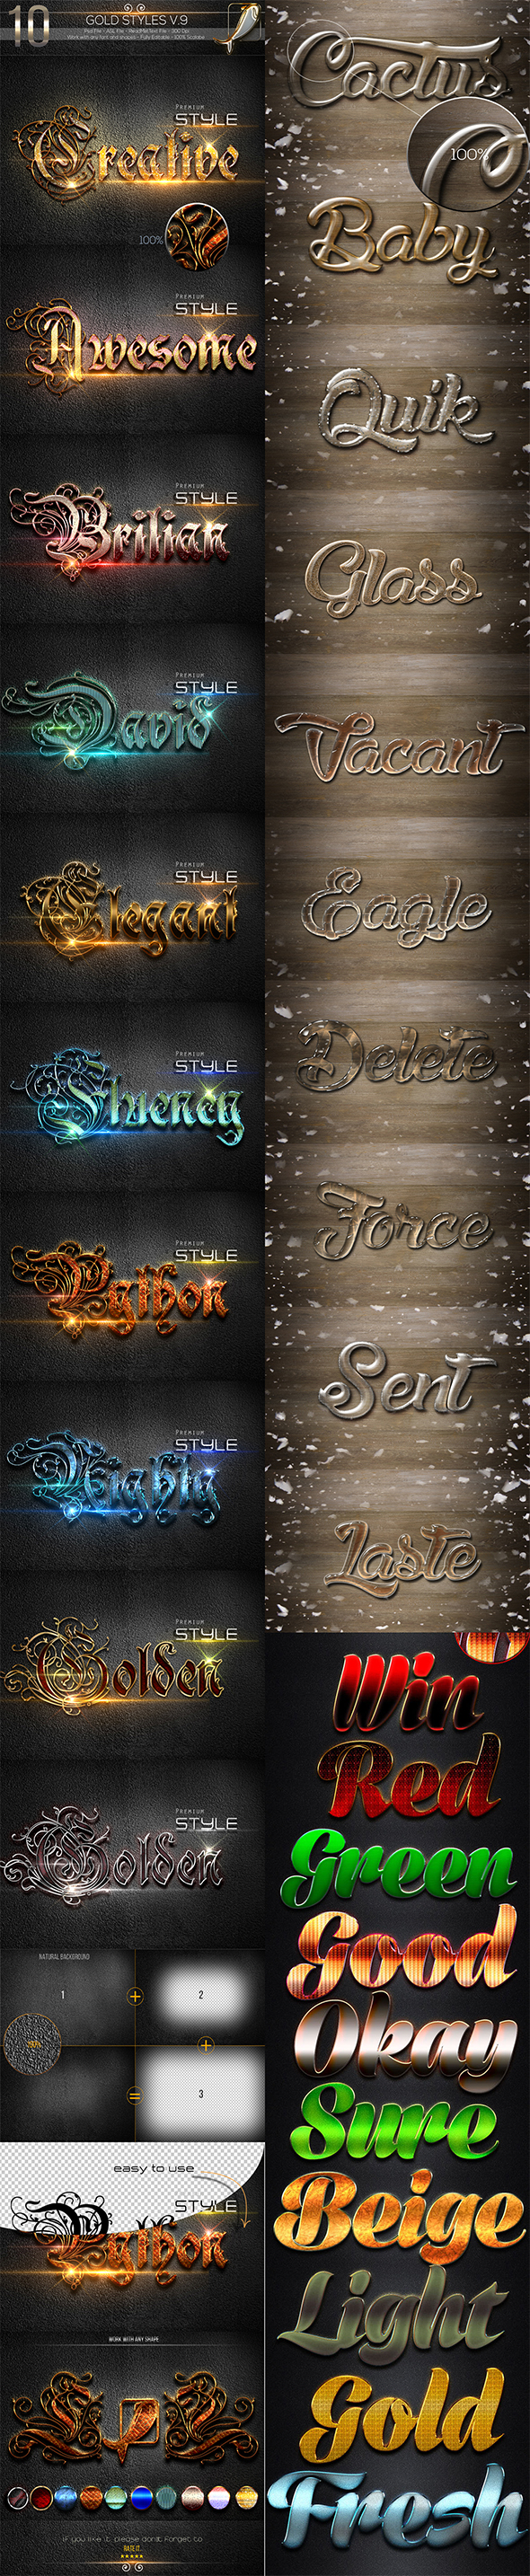 30 Bundle Text Style R4-6 - Styles Photoshop